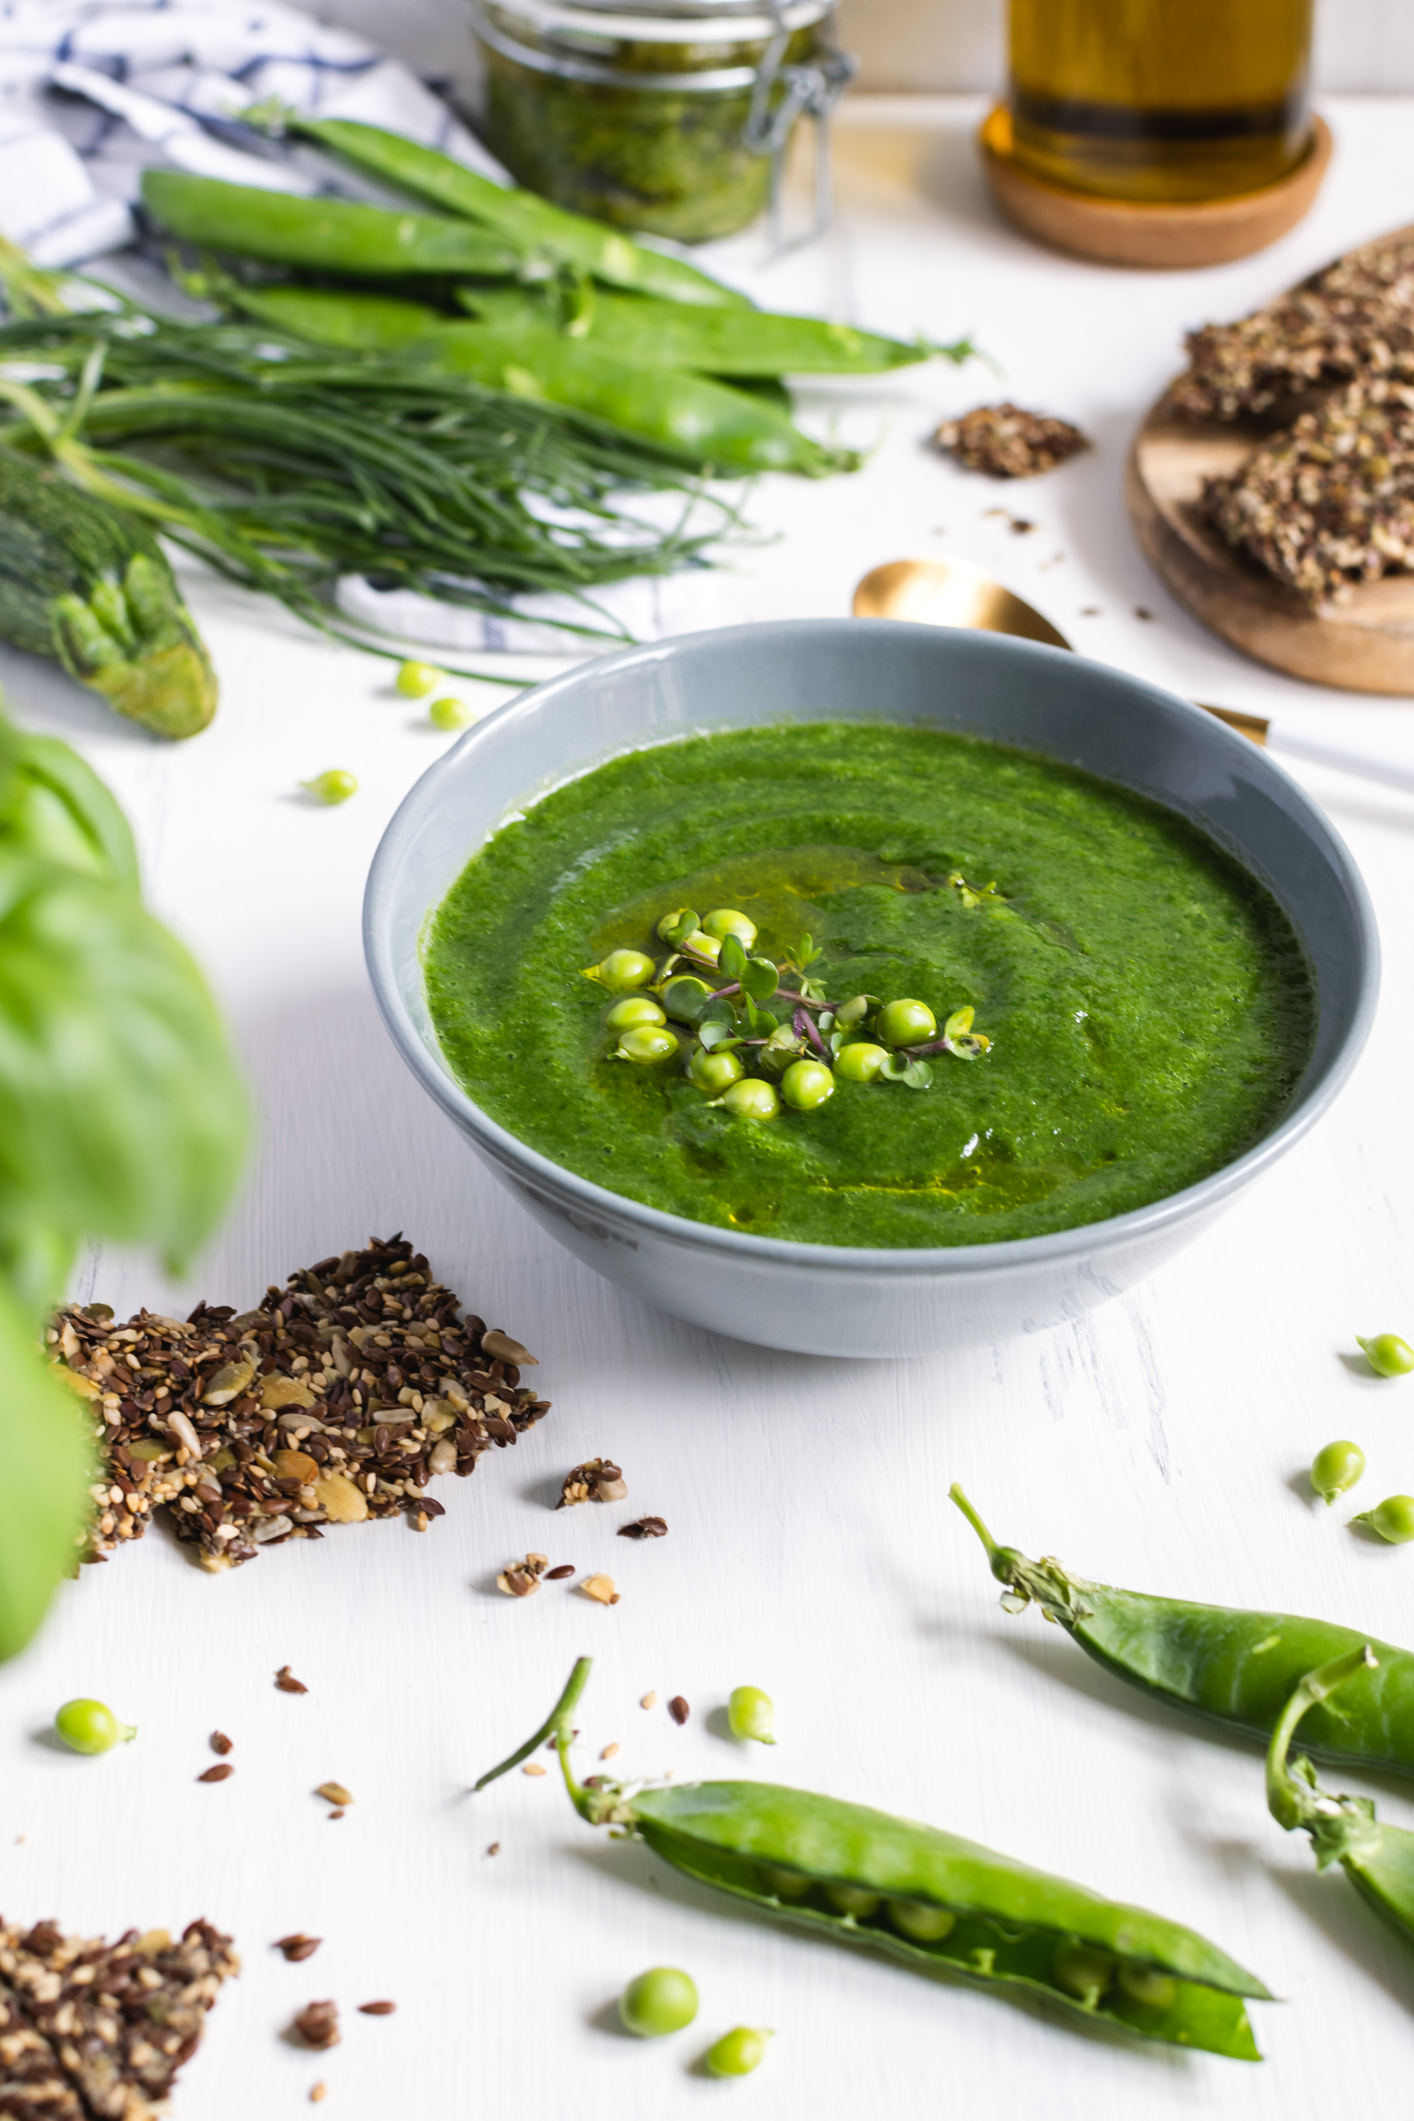 Green peas detox vegetarian soup in gray bowl, white wooden table, seeds crackers - diet food, healthy nutrition, weight loss